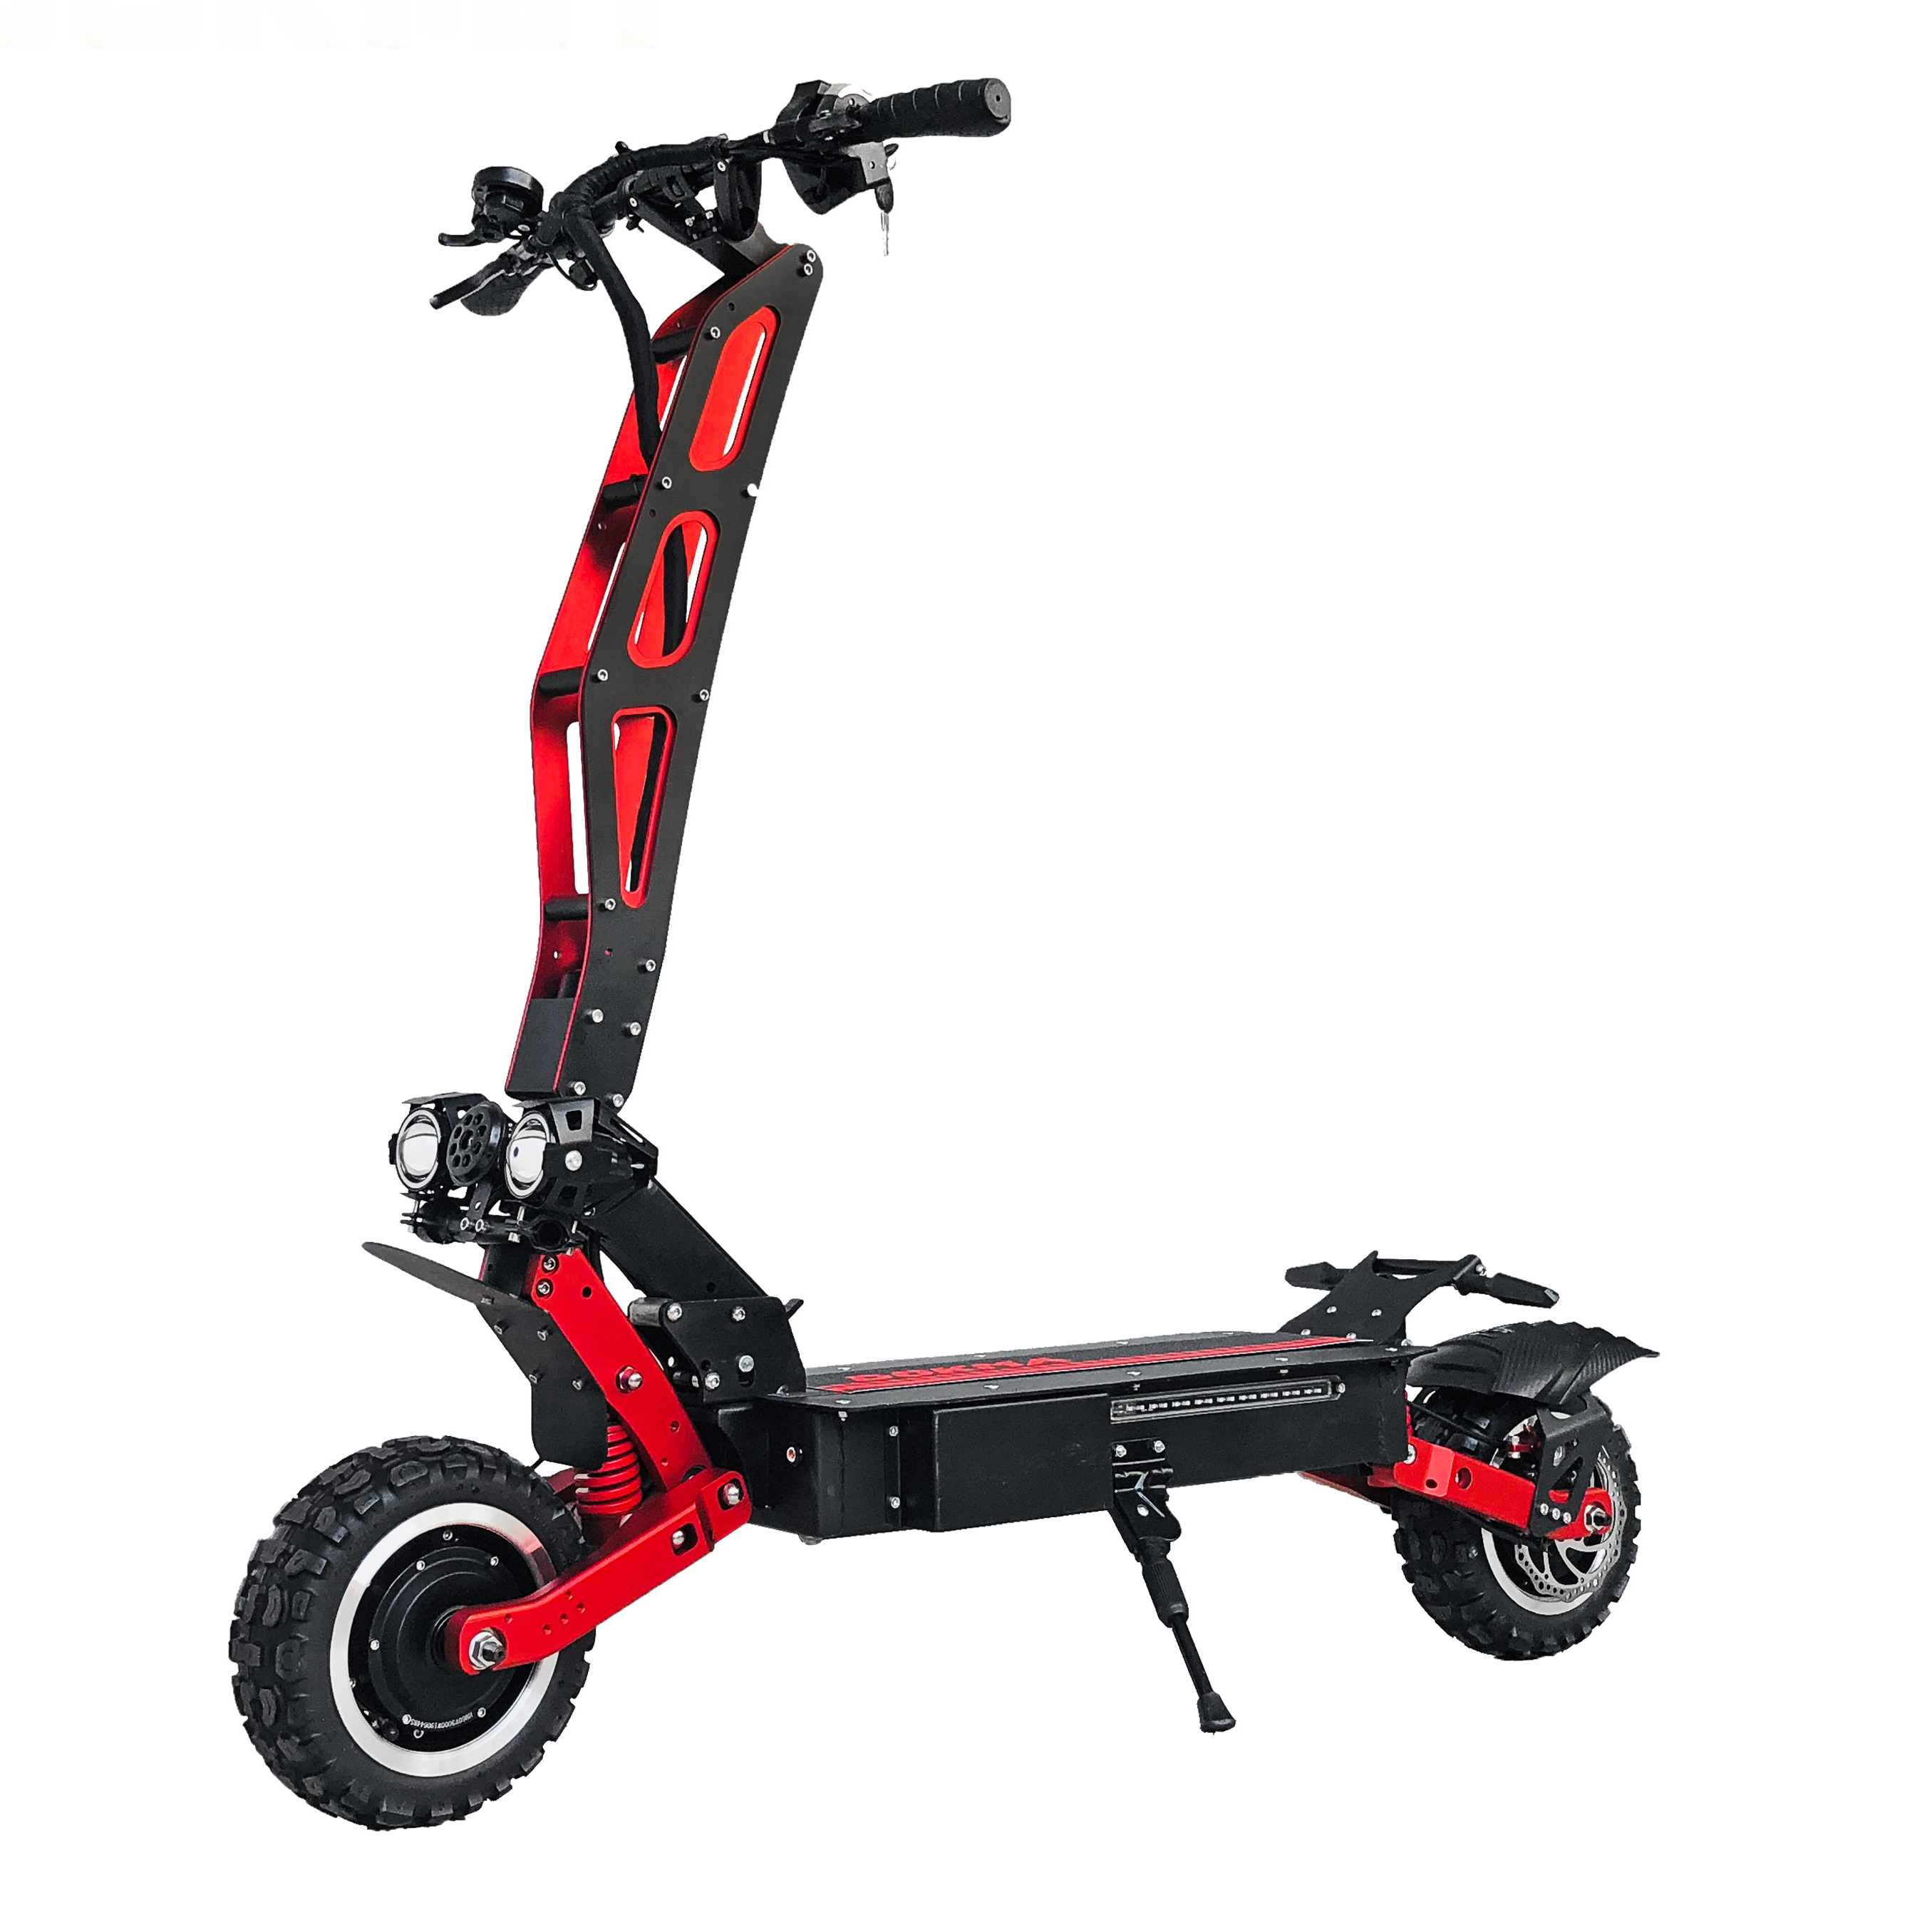 Dokma Dual Motor Double <strong>C</strong> style Absorption 3200W high powerful Electric Scooter